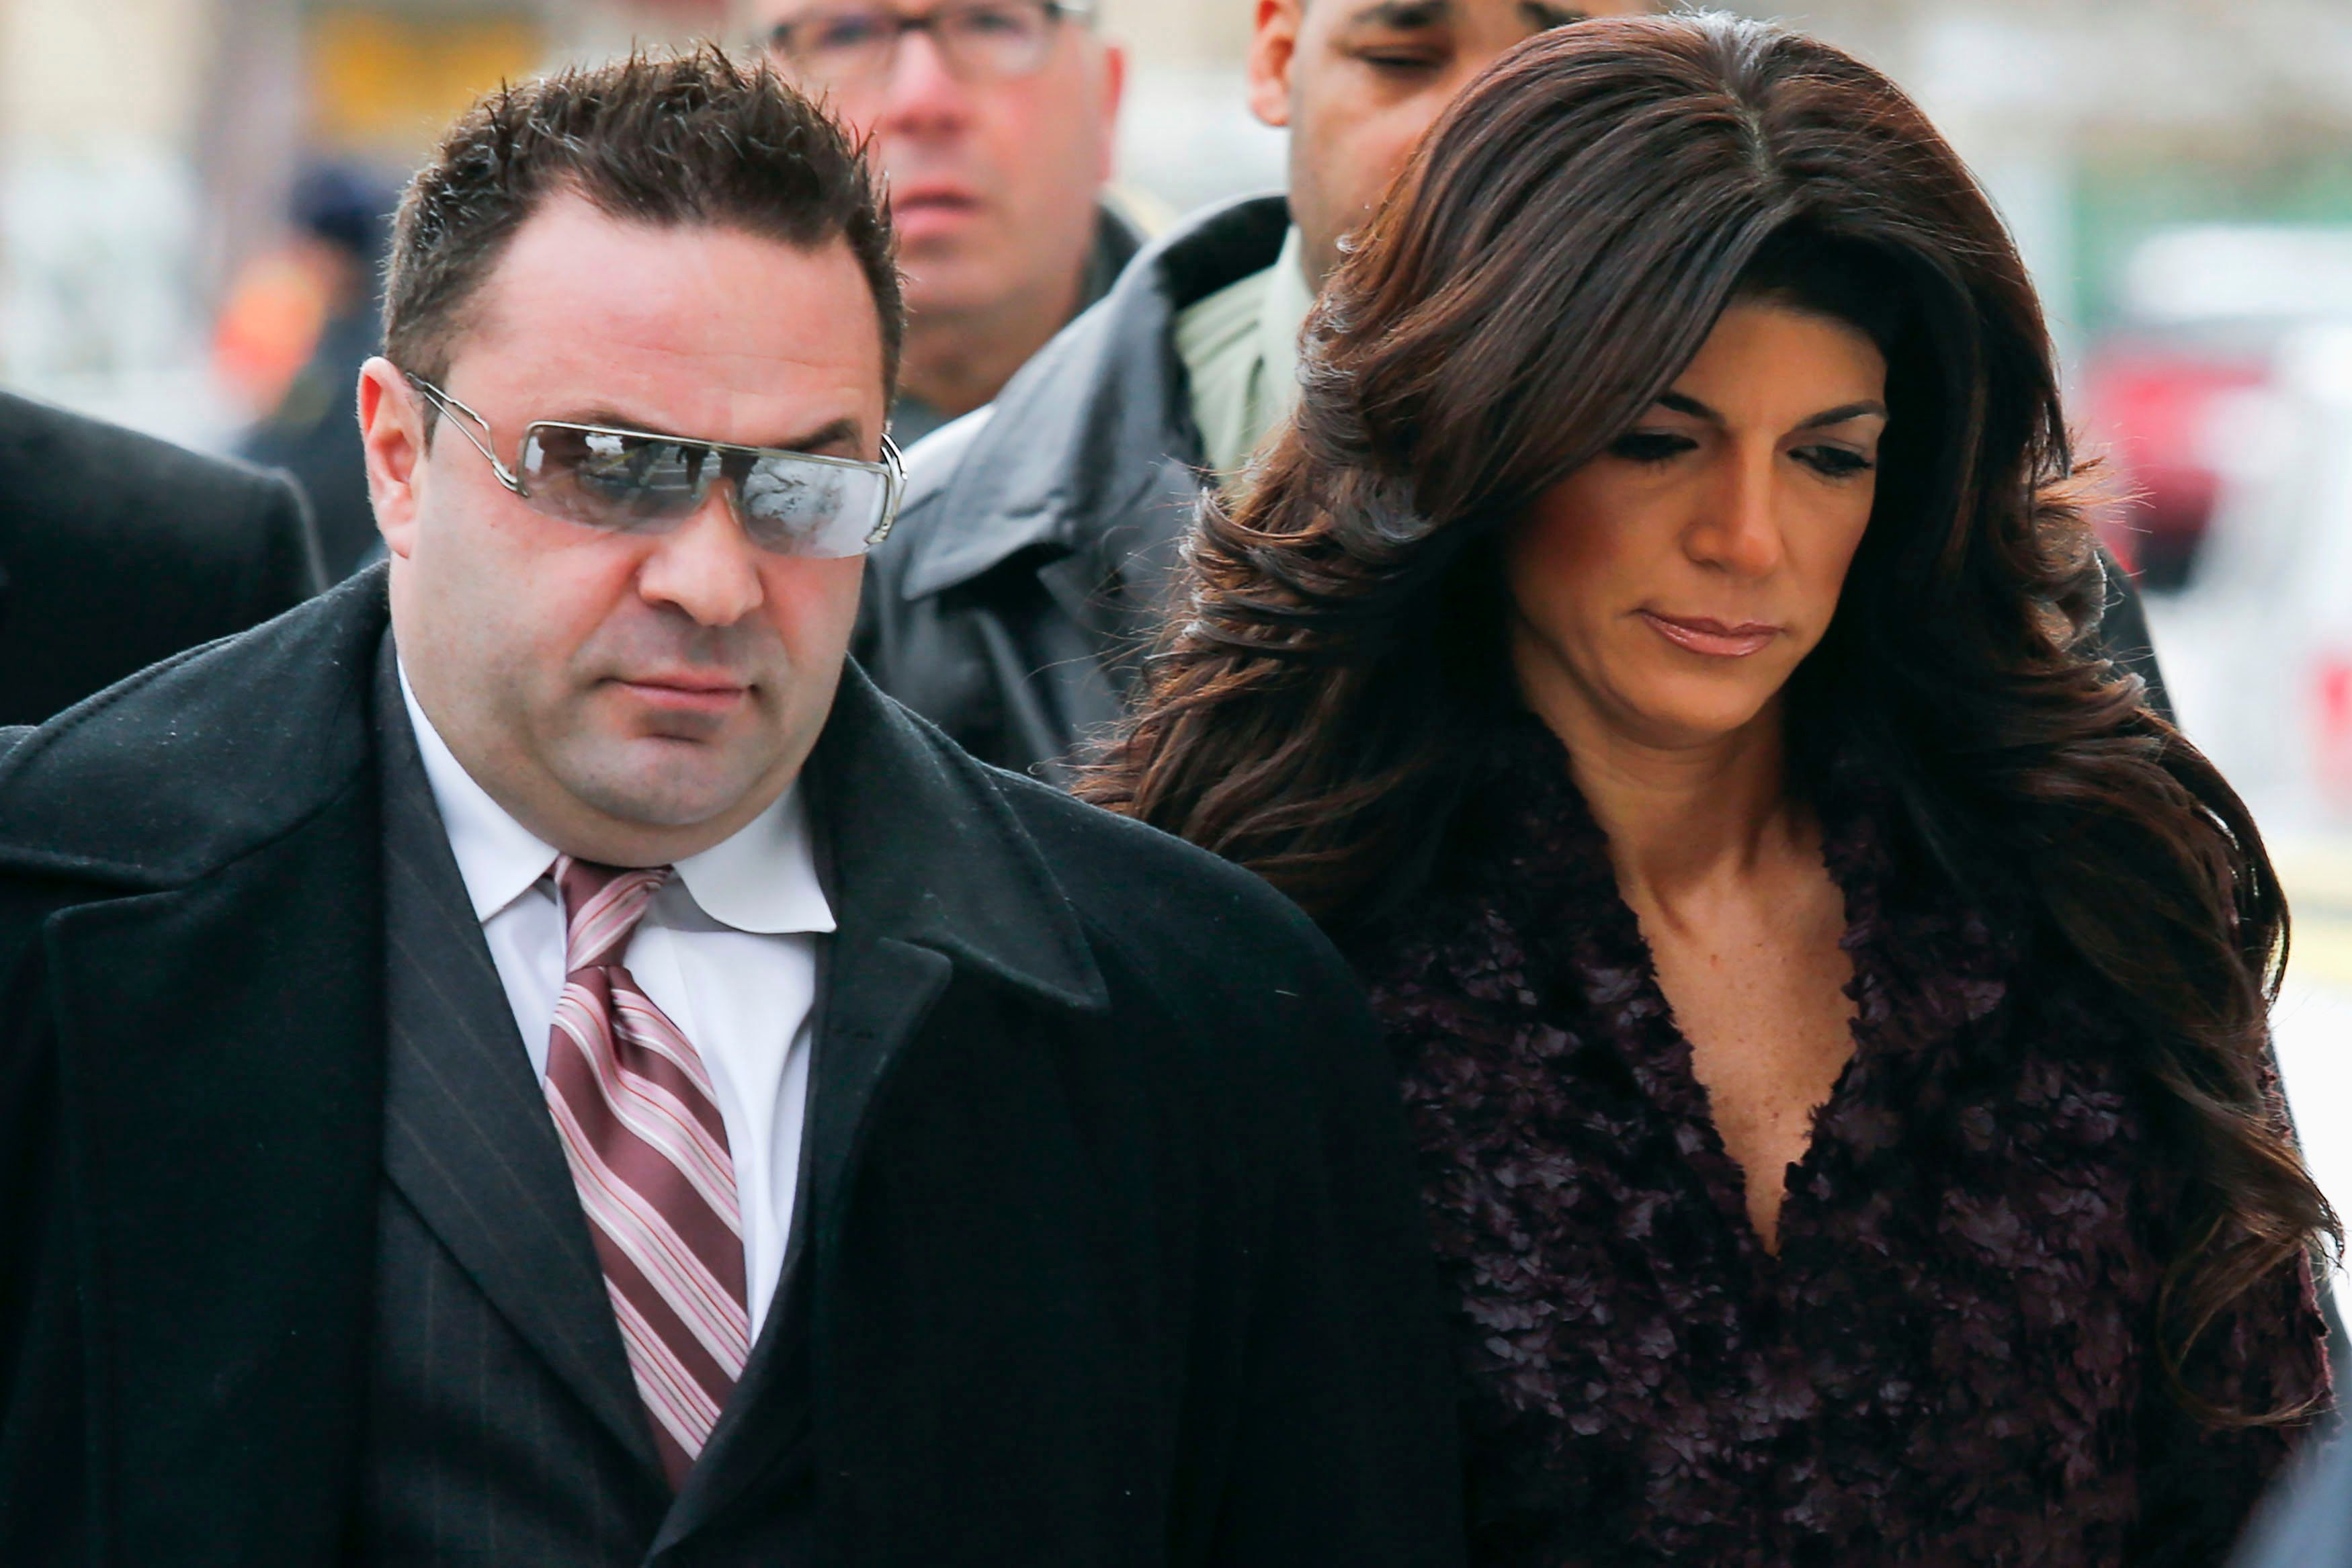 Teresa Giudice's husband Joe will be deported to Italy